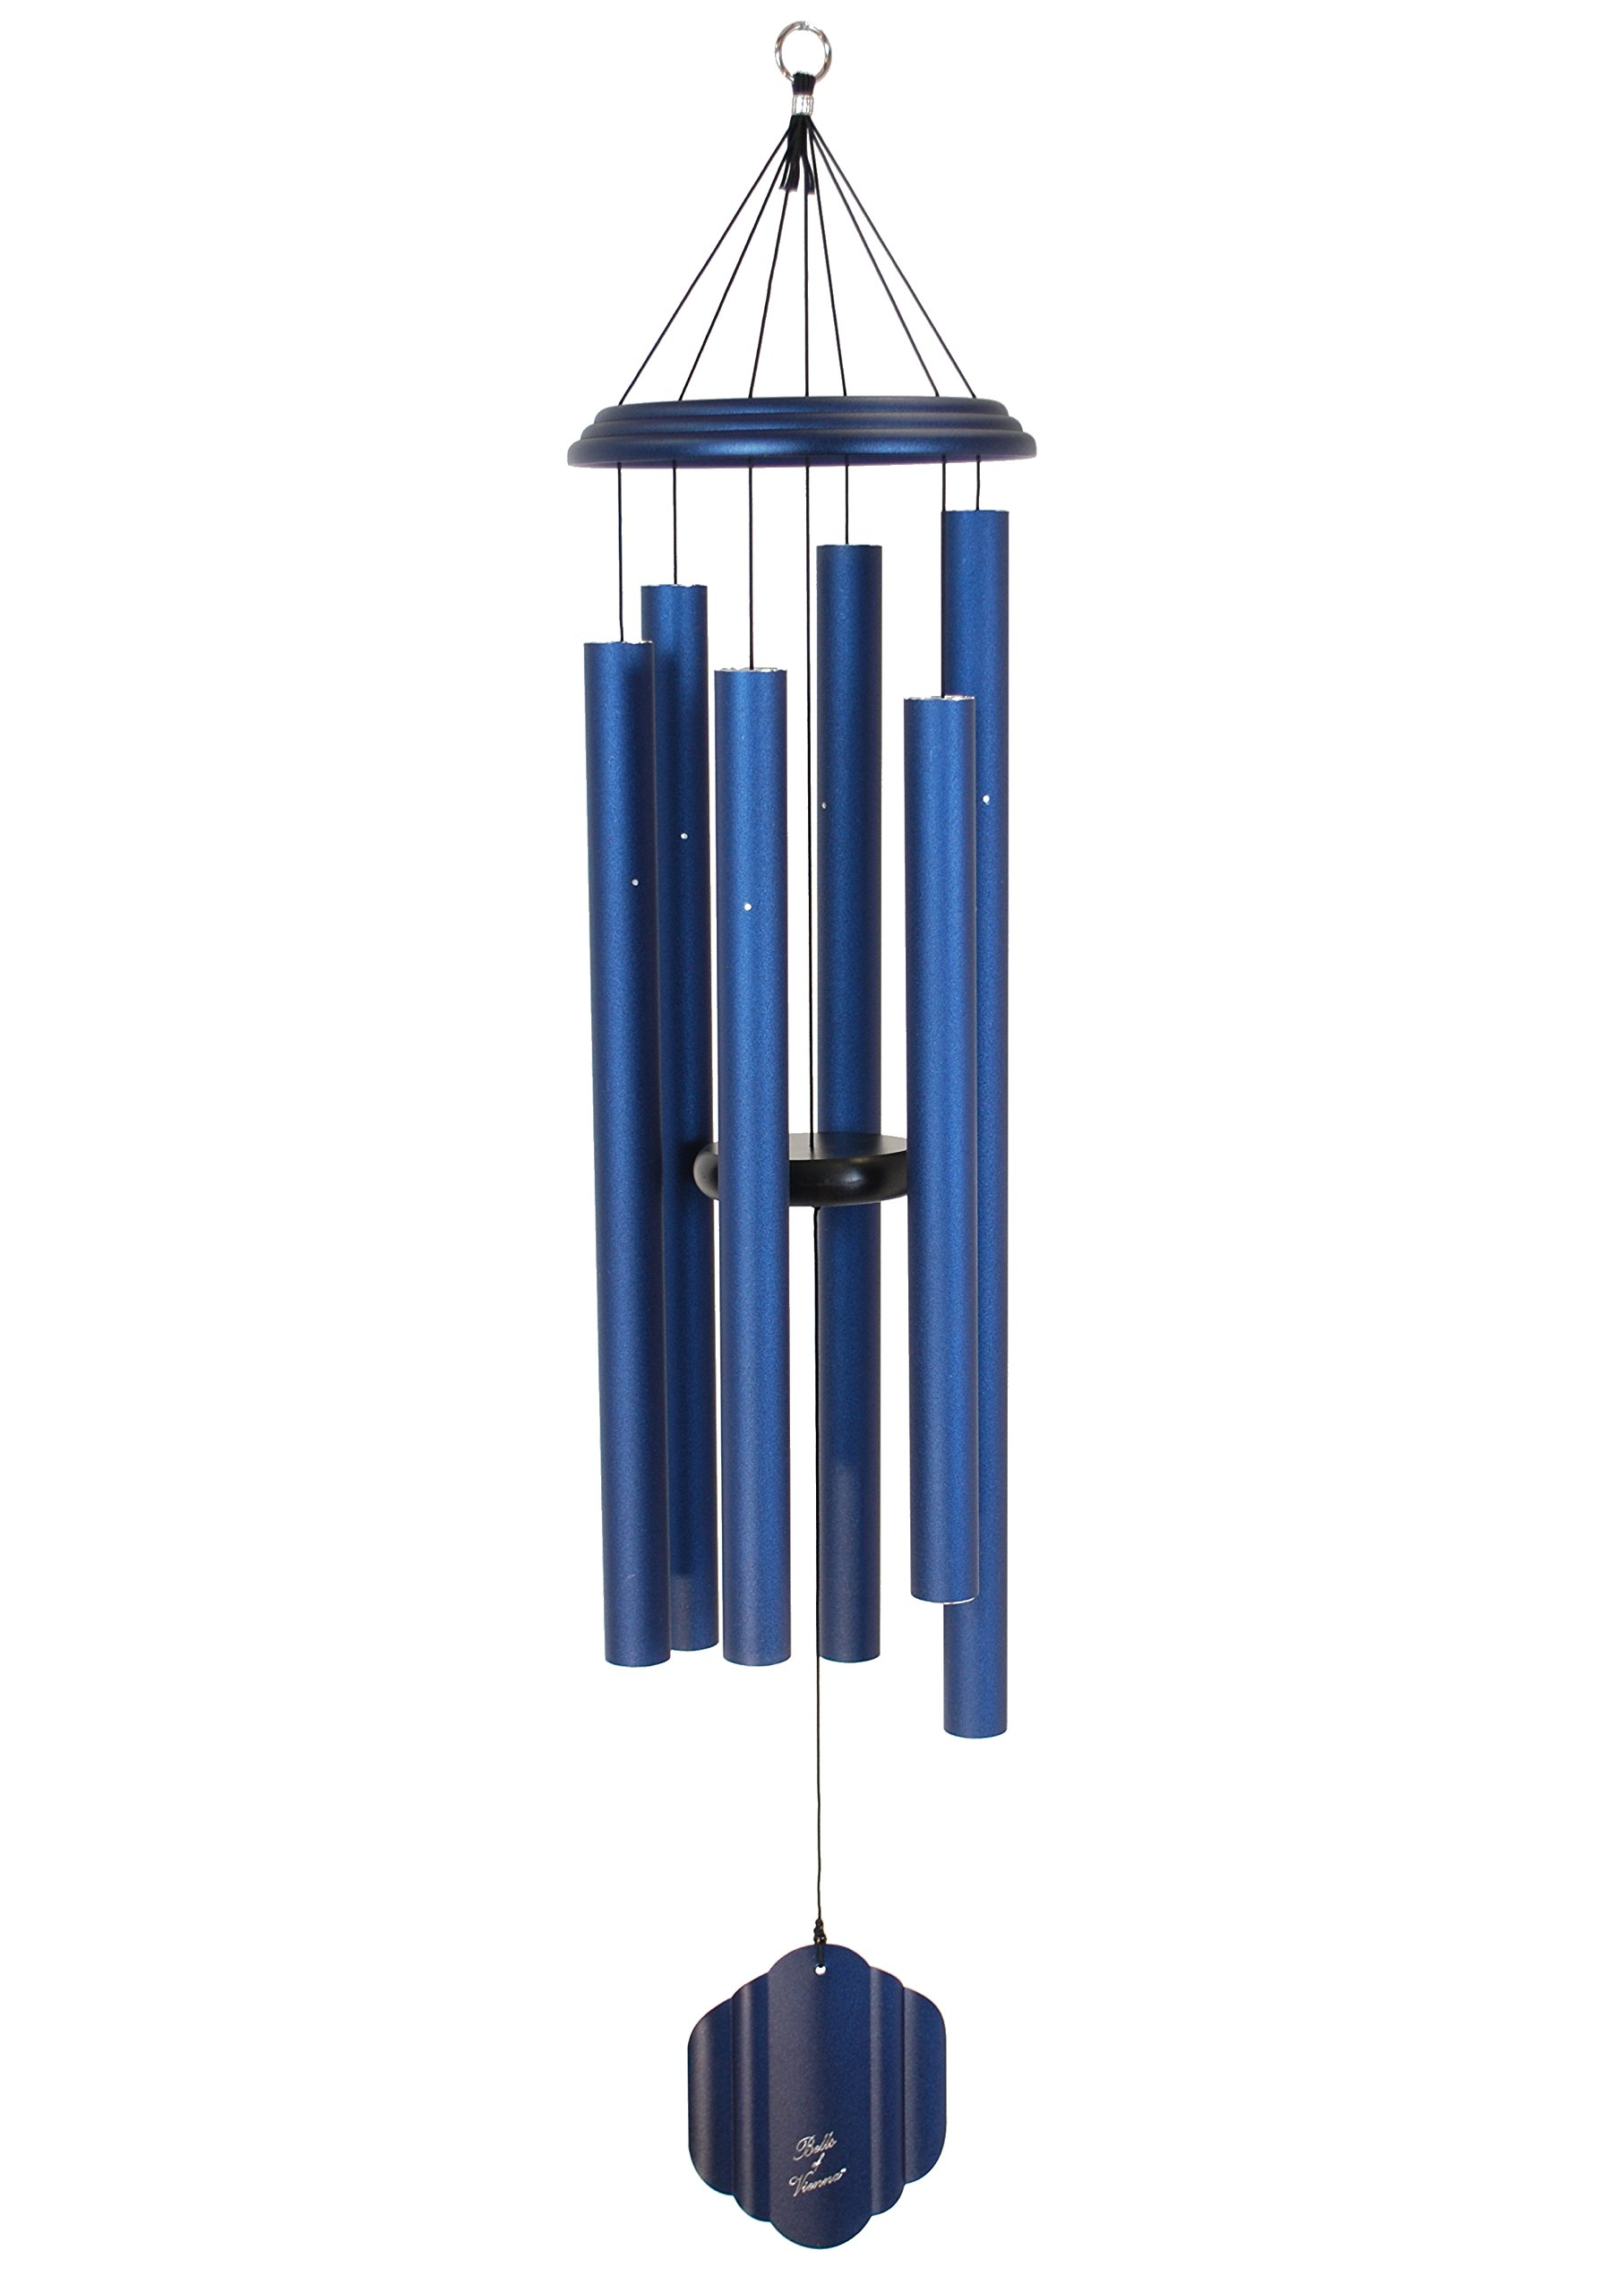 Bells of Vienna 50-inch Windchime, Midnight Blue